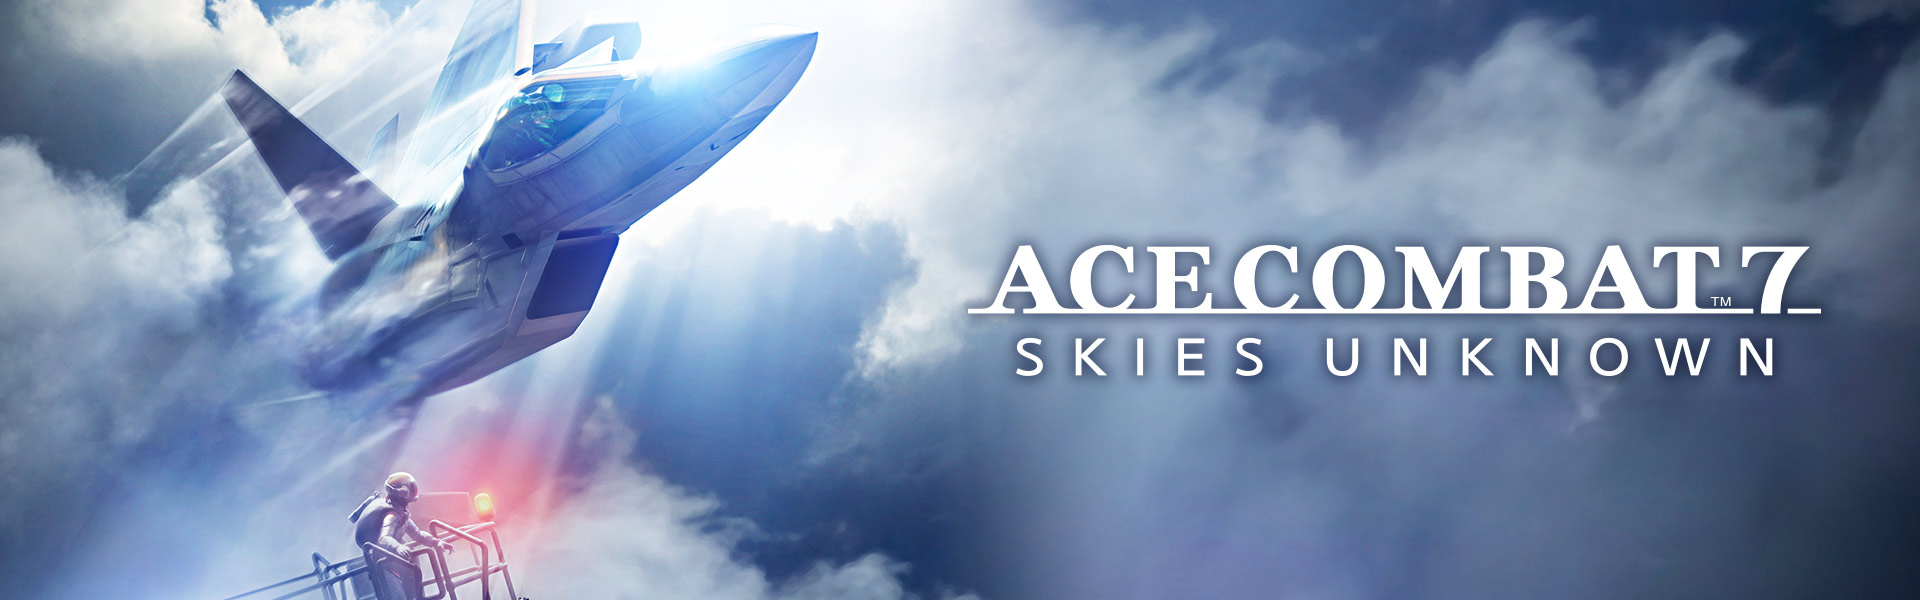 ACE COMBAT™ 7: SKIES UNKNOWN - Avion de chasse filant à travers les nuages